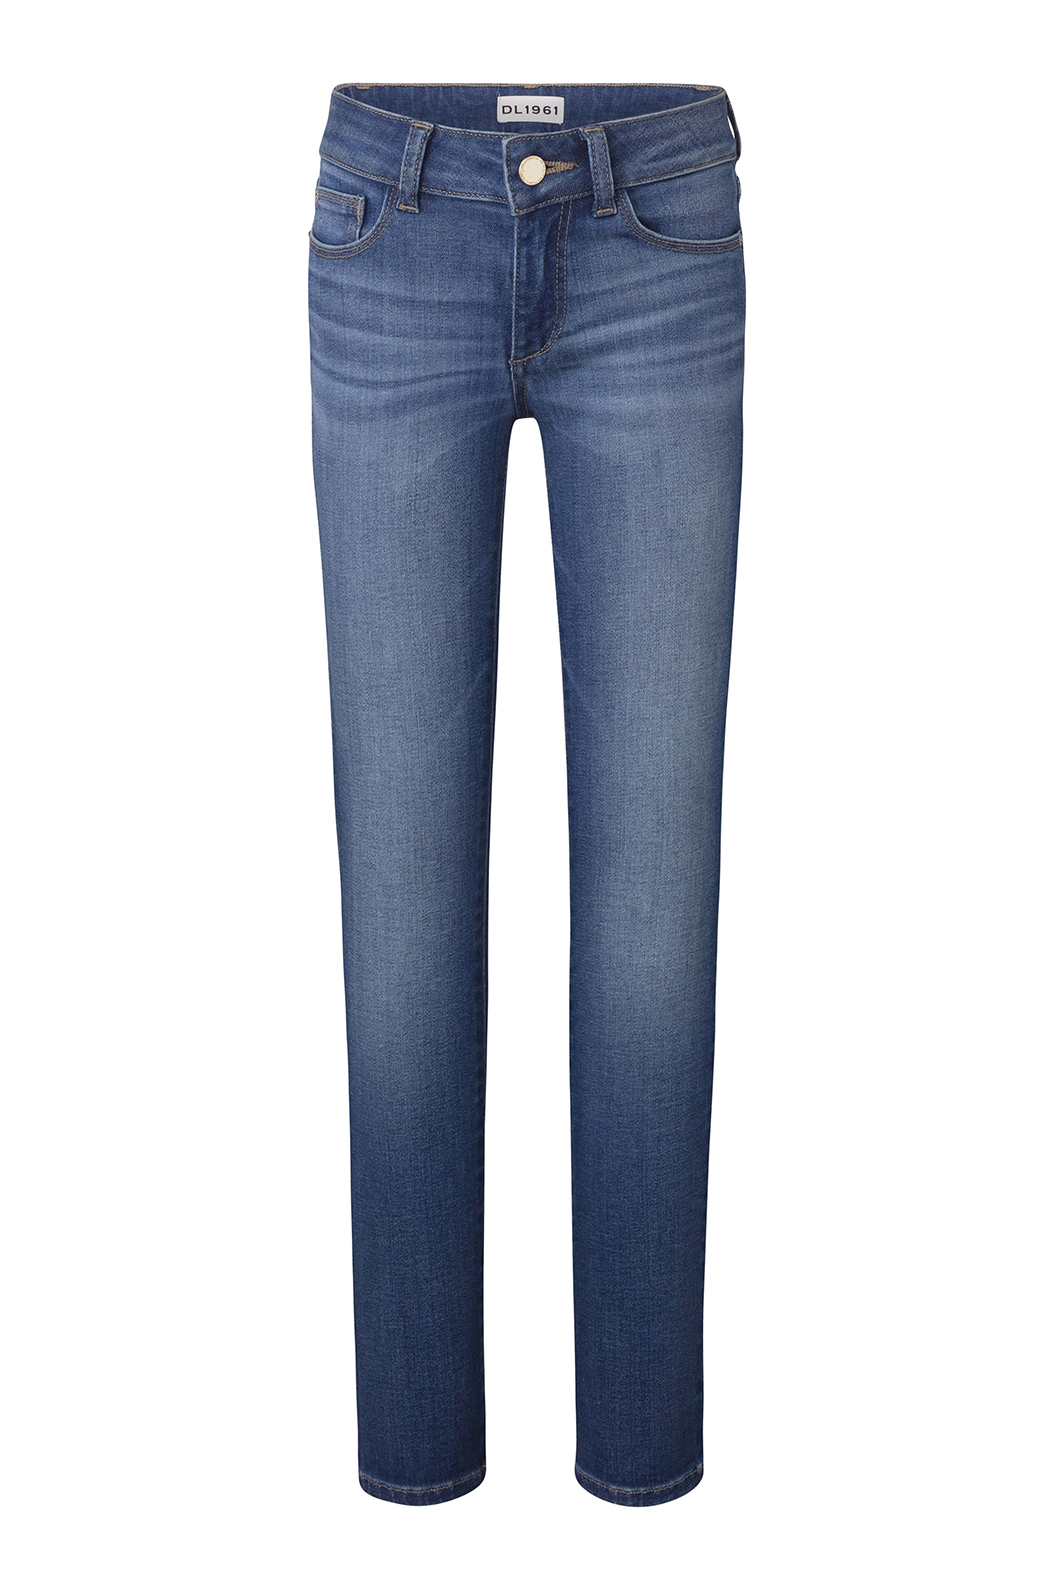 DL1961 Chloe Skinny Jeans 6664 - Front Cropped Image